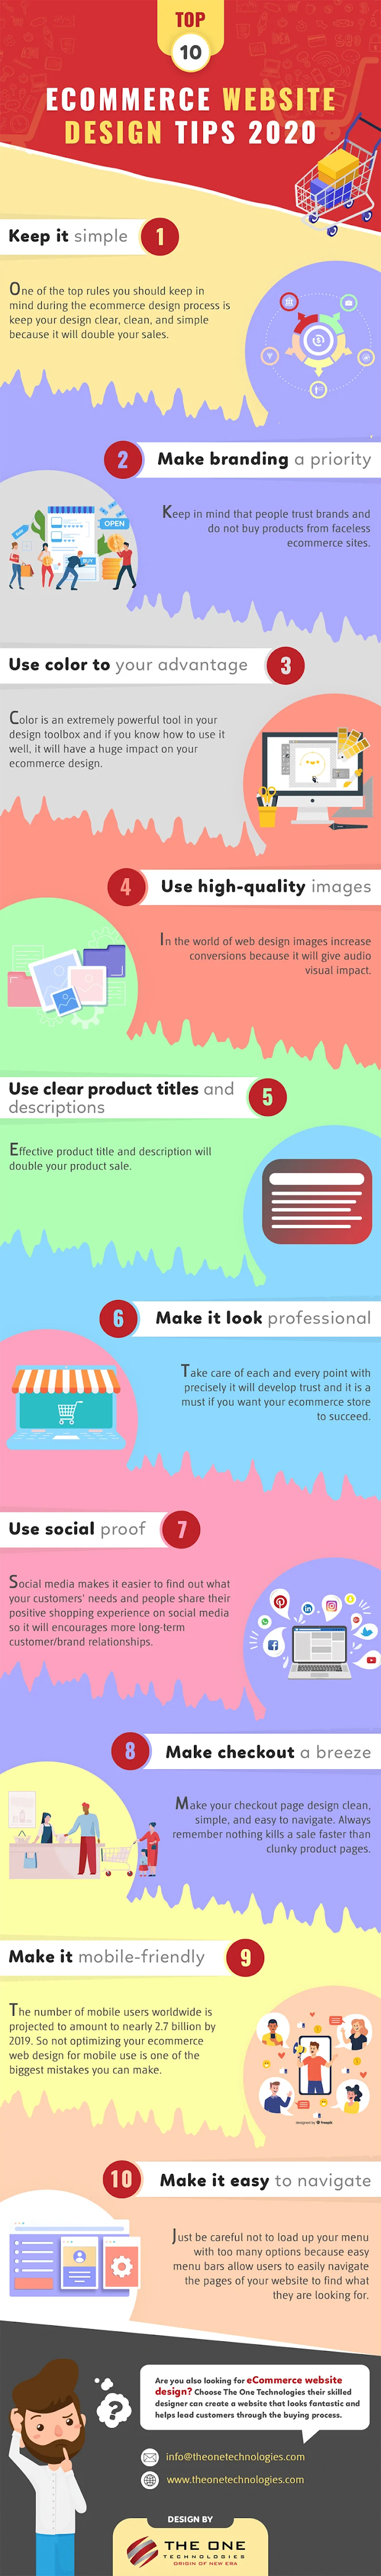 The Top 10 eCommerce Website Design Tips [Infographic]